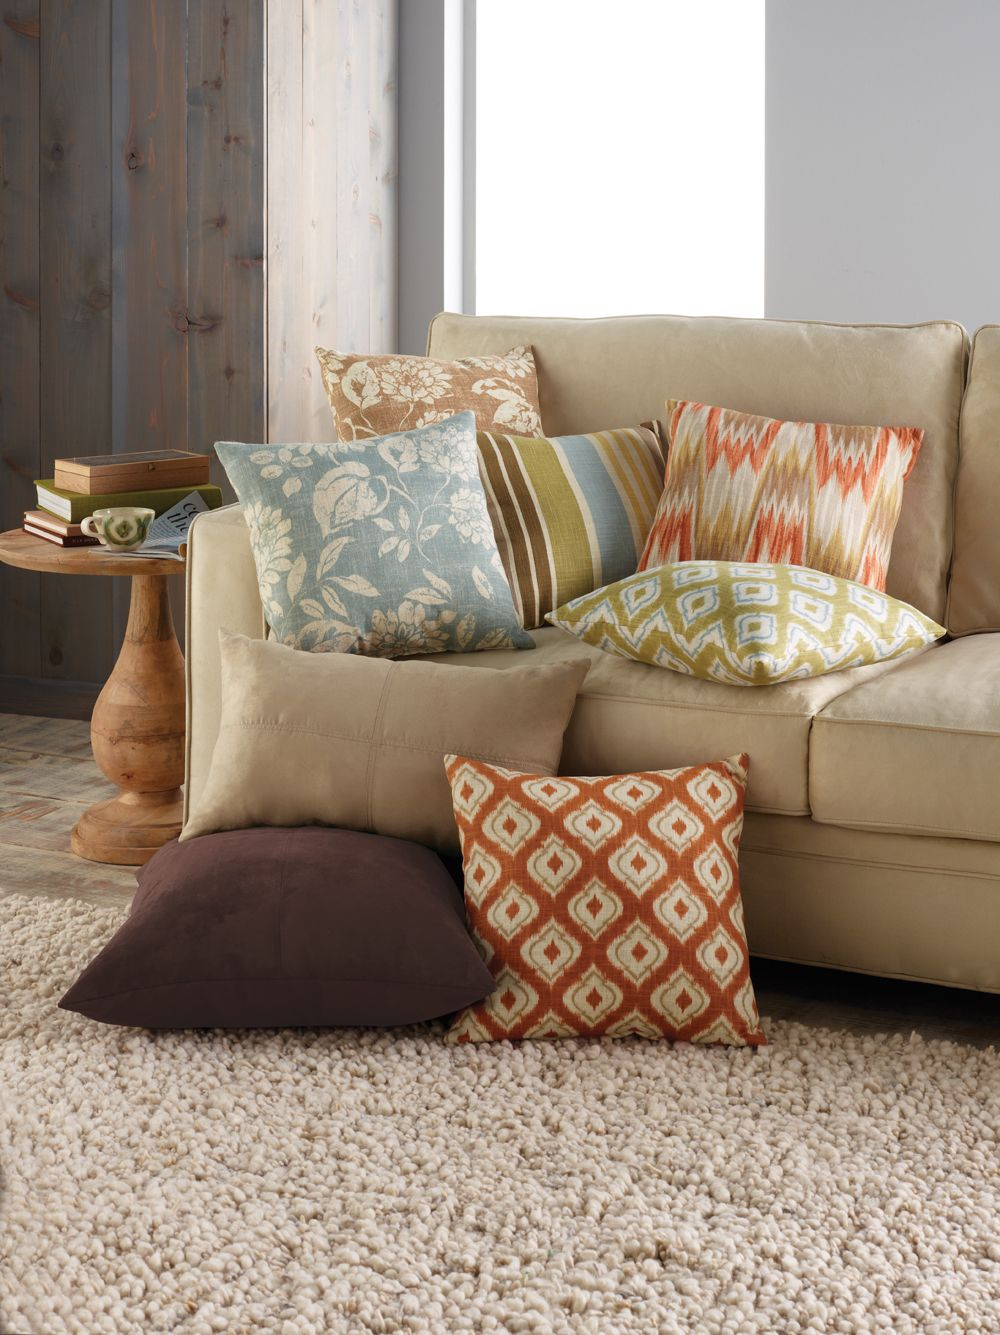 Kohls Decorative Pillows Unique Throw Pillows Galore#homedecor #kohls  Home Style  Pinterest Decorating Inspiration